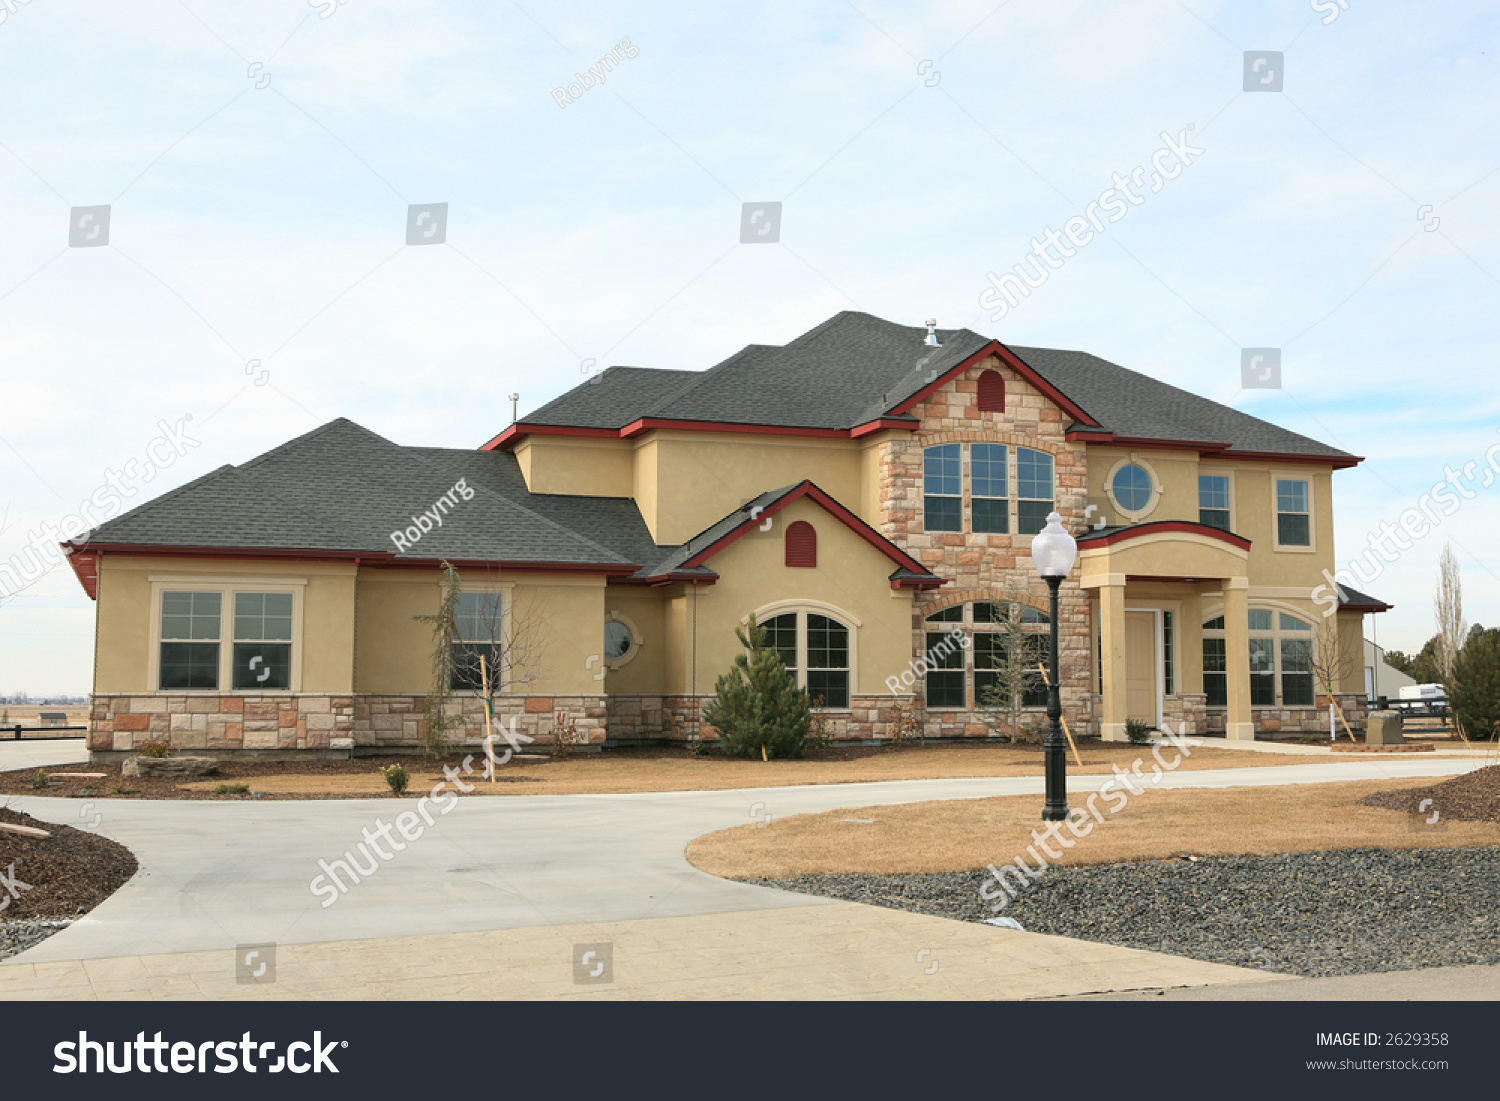 Large expensive modern house yellow stucco stock photo for Modern house yellow